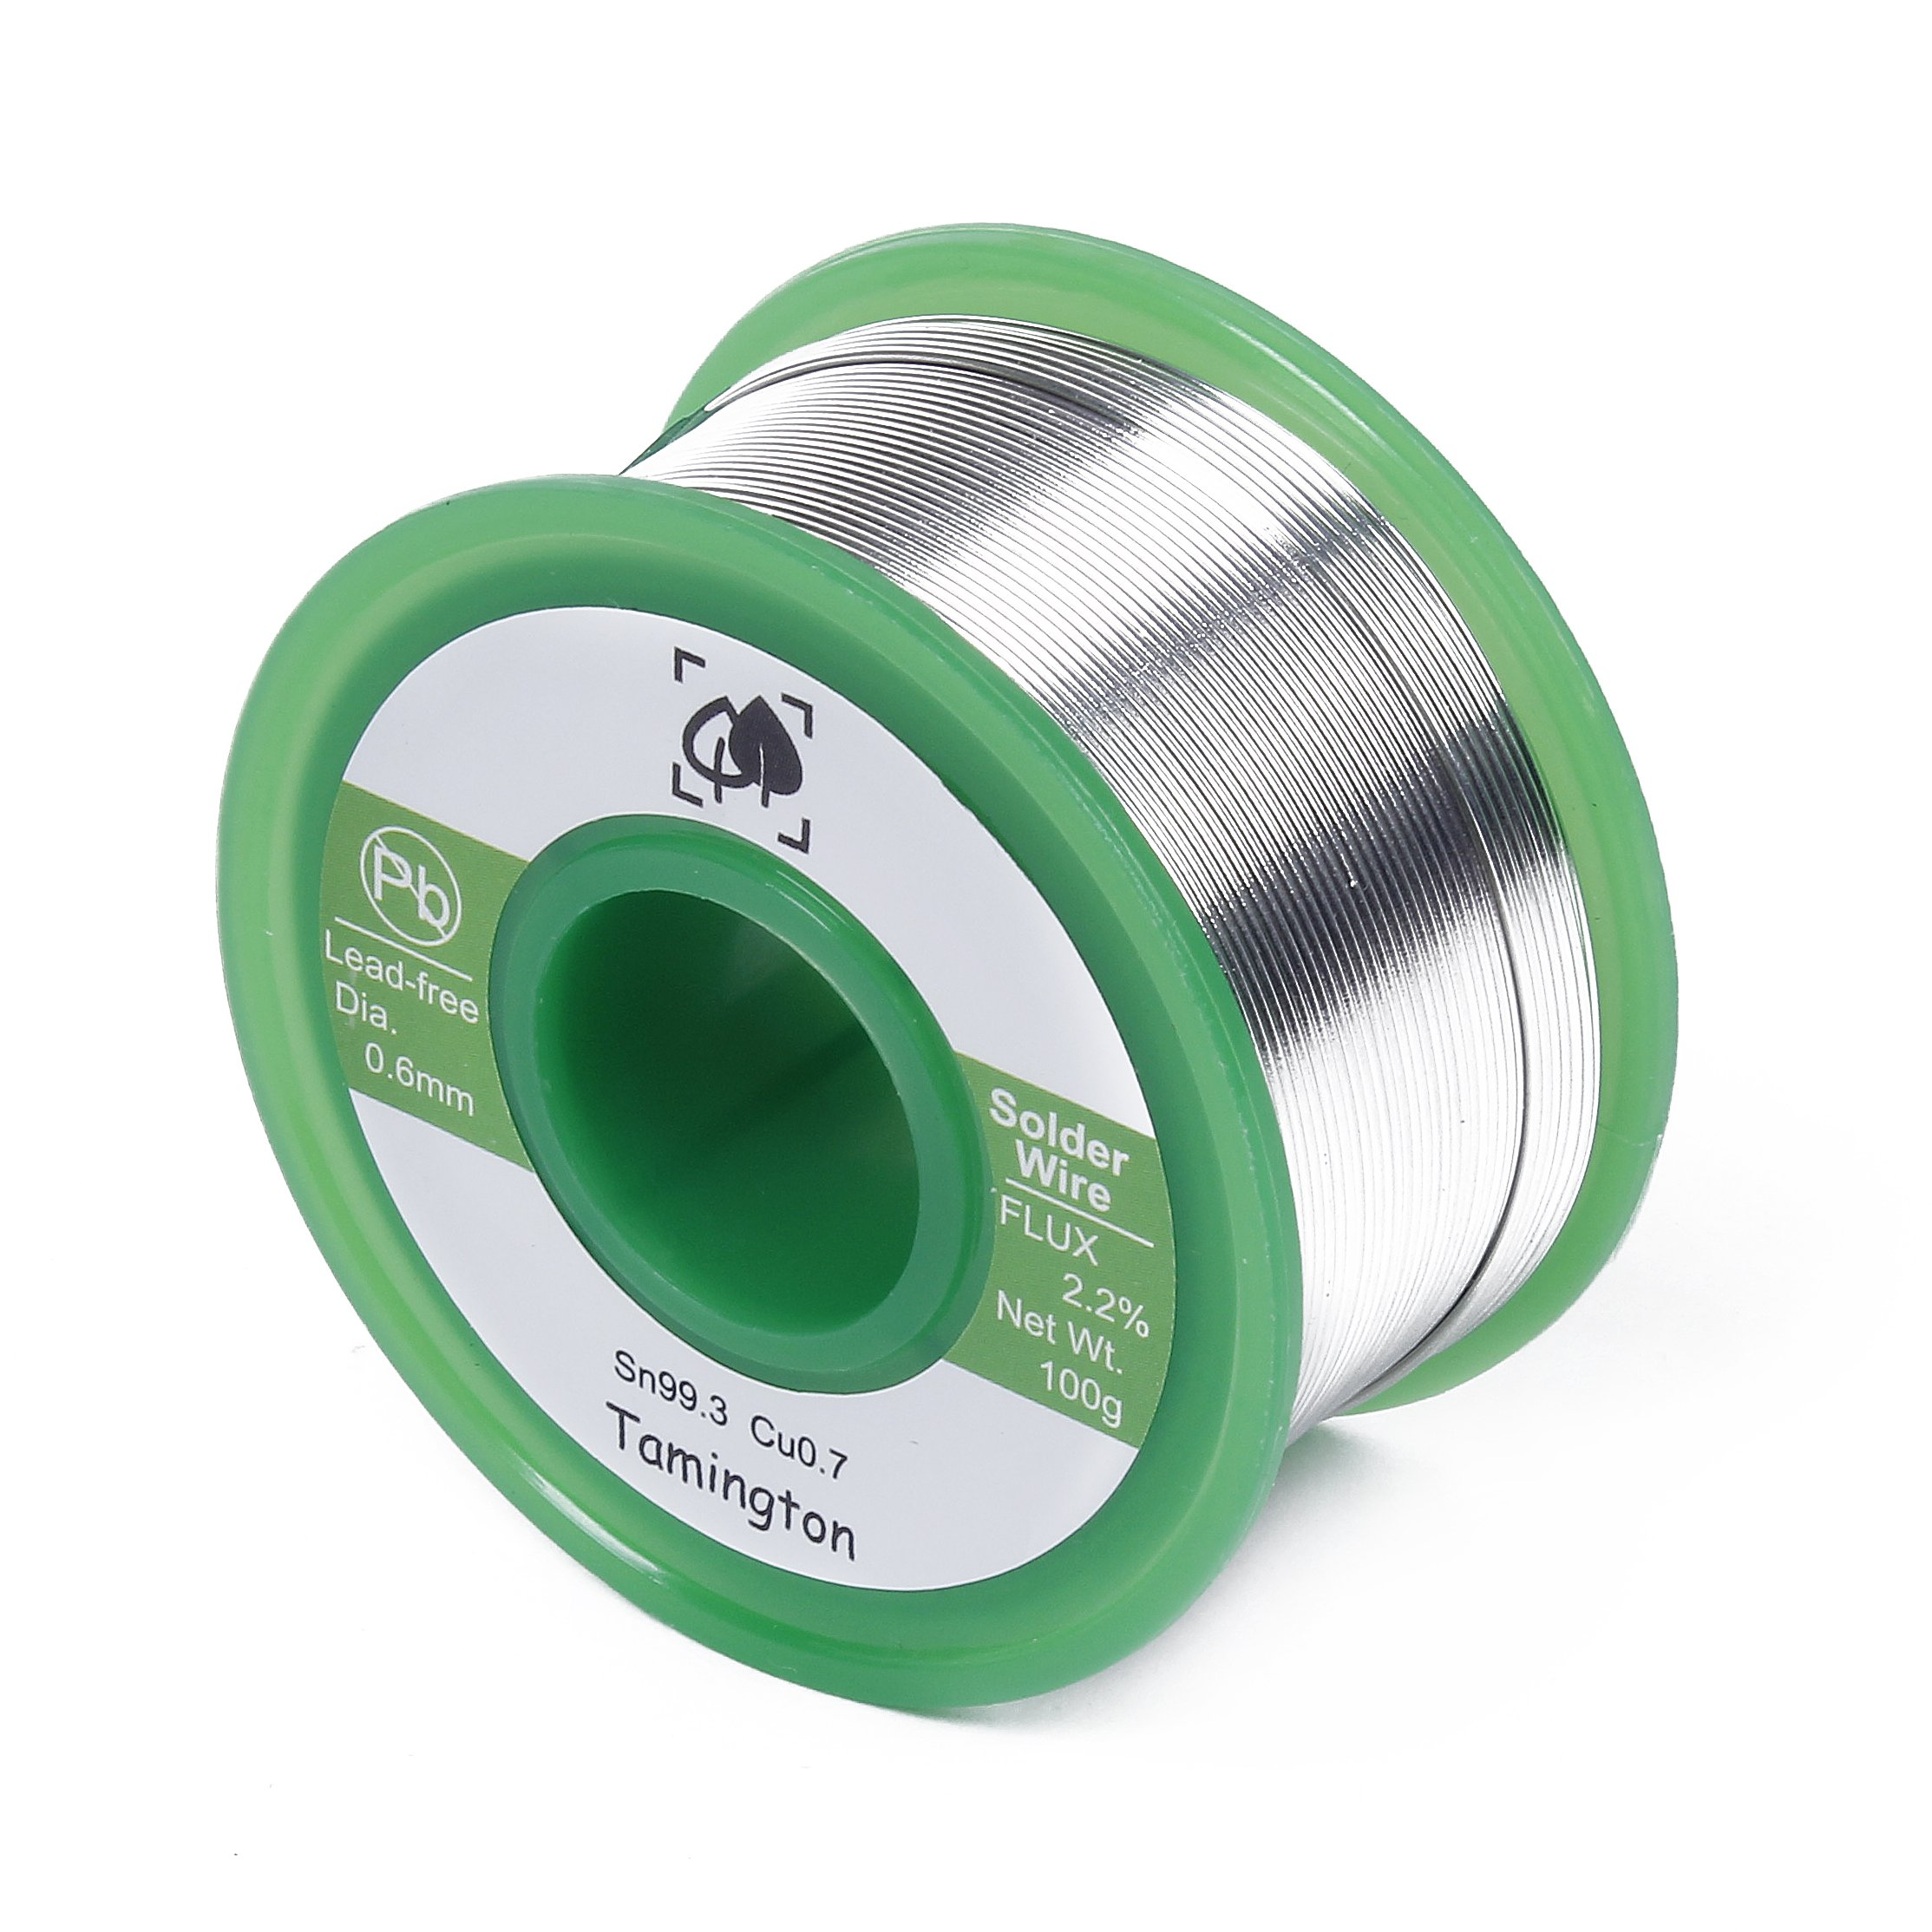 Lead Free Solder Wire Sn99.3 Cu0.7 with Rosin Core for Electrical Soldering